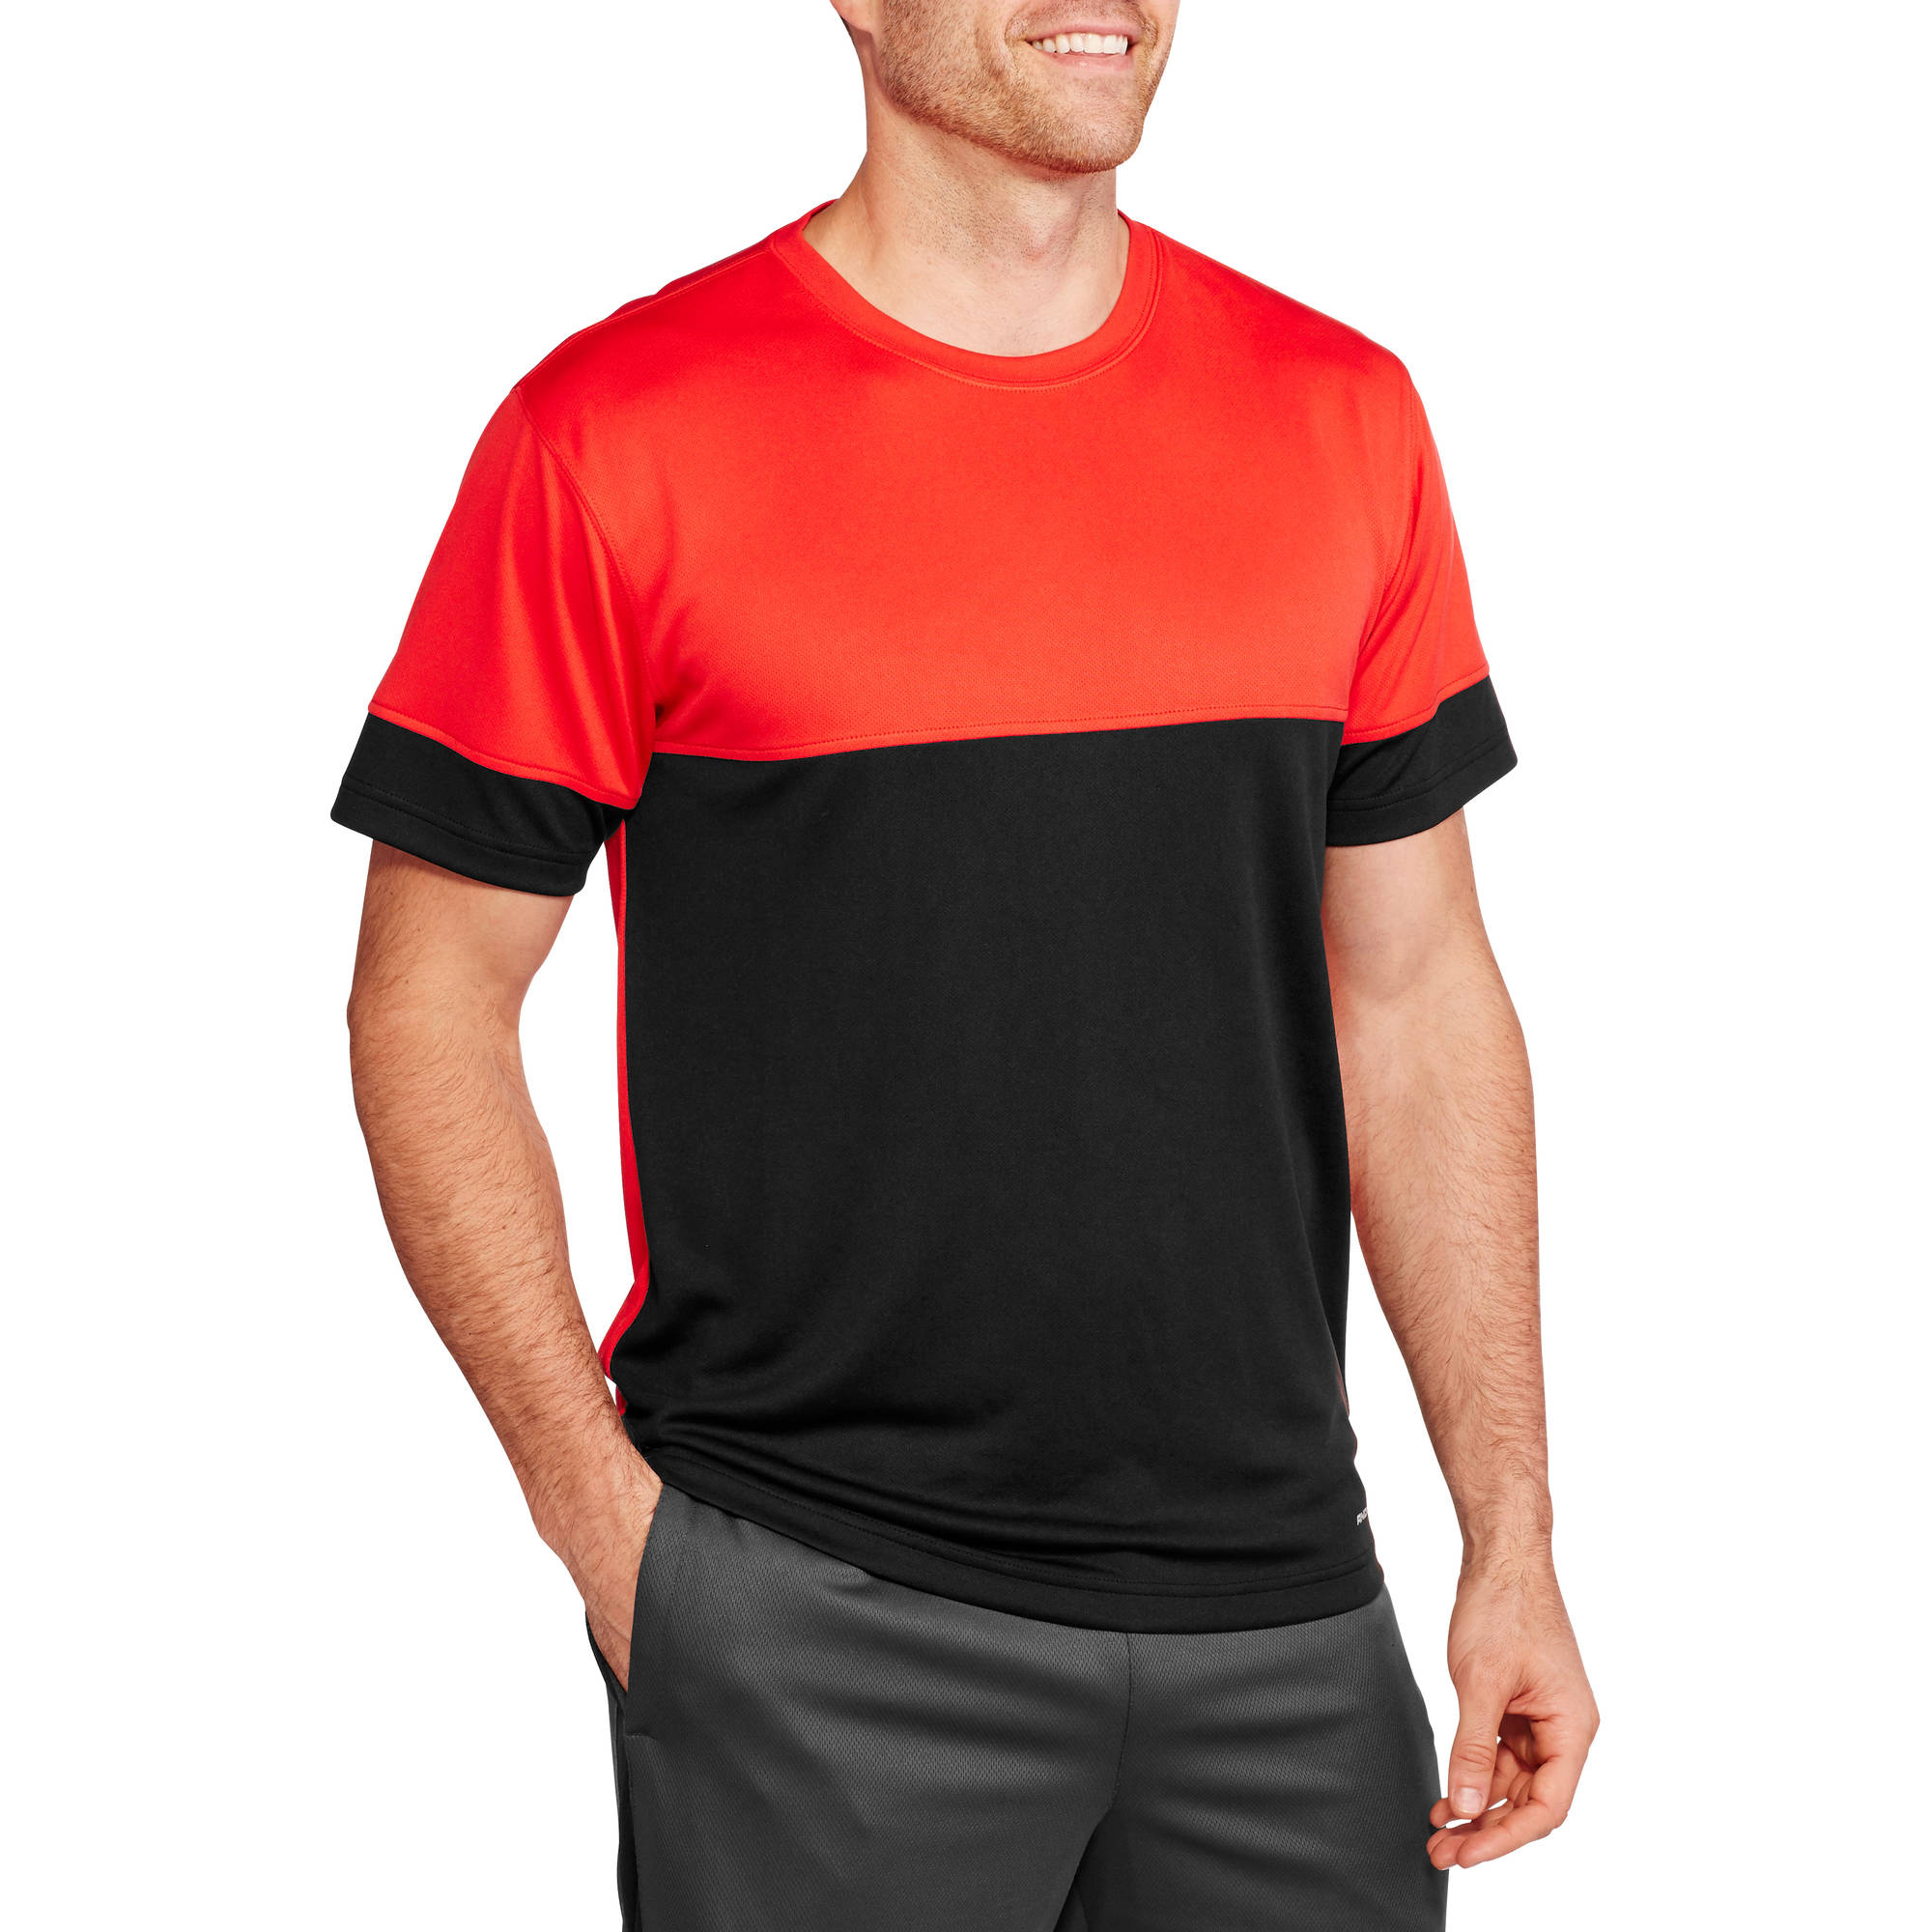 AND1 Men's Don't Sweat It Performance Tee